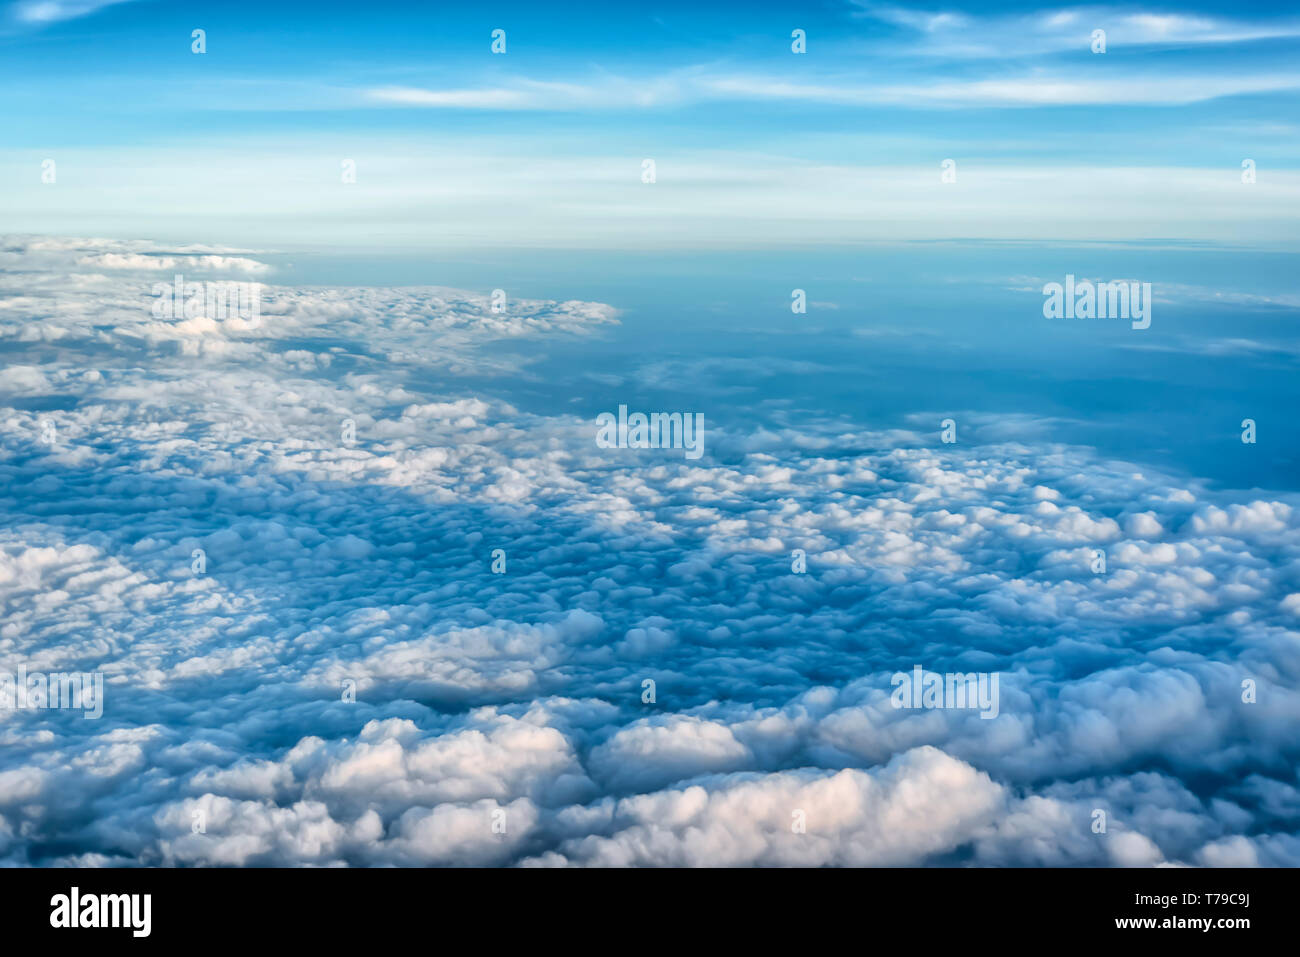 Aerial view of monsoon clouds spread over the wide expanse of plains of India. Cumulonimbus and Cumulus clouds are visible in the frame. - Stock Image